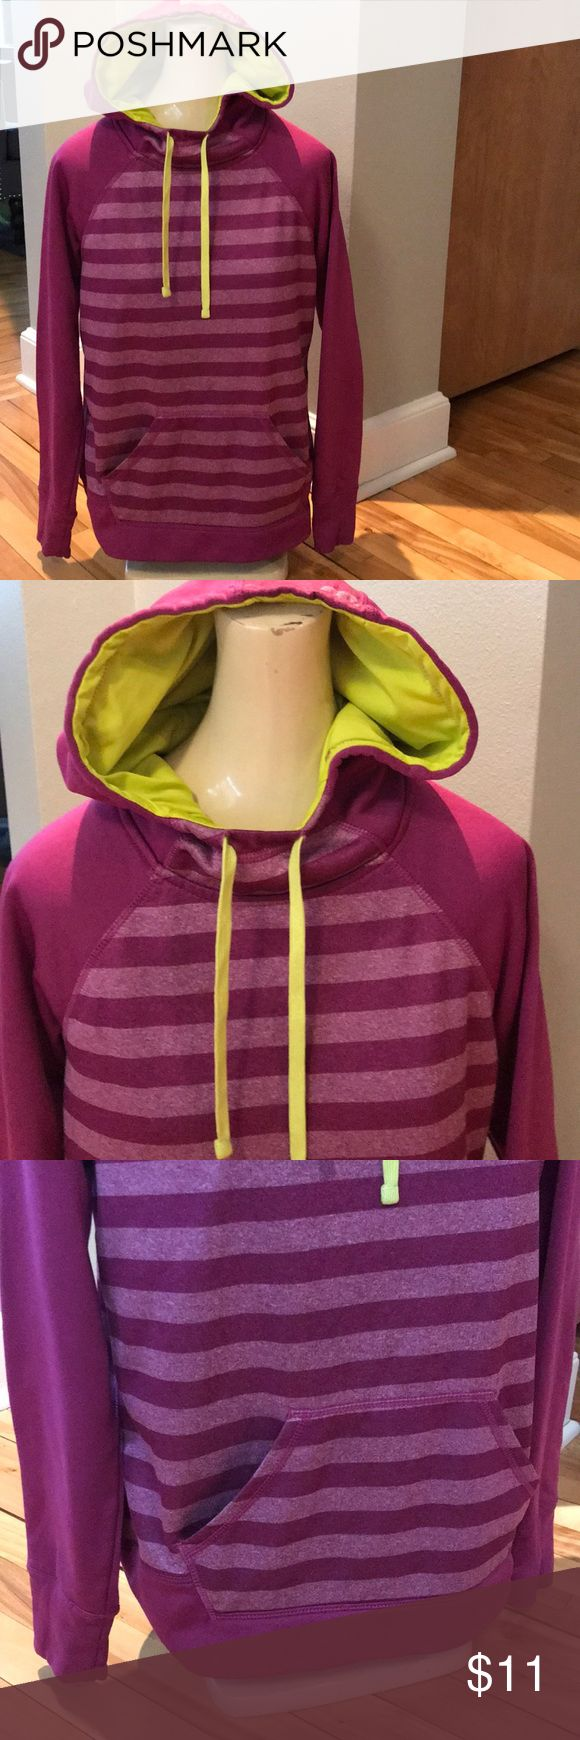 Reebok purple stripe/lime lined hoodie, S/CH Reebok purple stripe hoodie. Solid hem cuff, sleeves and hood. Hood with striped panel down center. Hood lined in lime with lime drawstrings. Lower front kangaroo pouch pocket. 100% polyester. Size small- Childrens. Really close to girls 10-12. Nonsmoking home. Reebok Shirts & Tops Sweatshirts & Hoodies